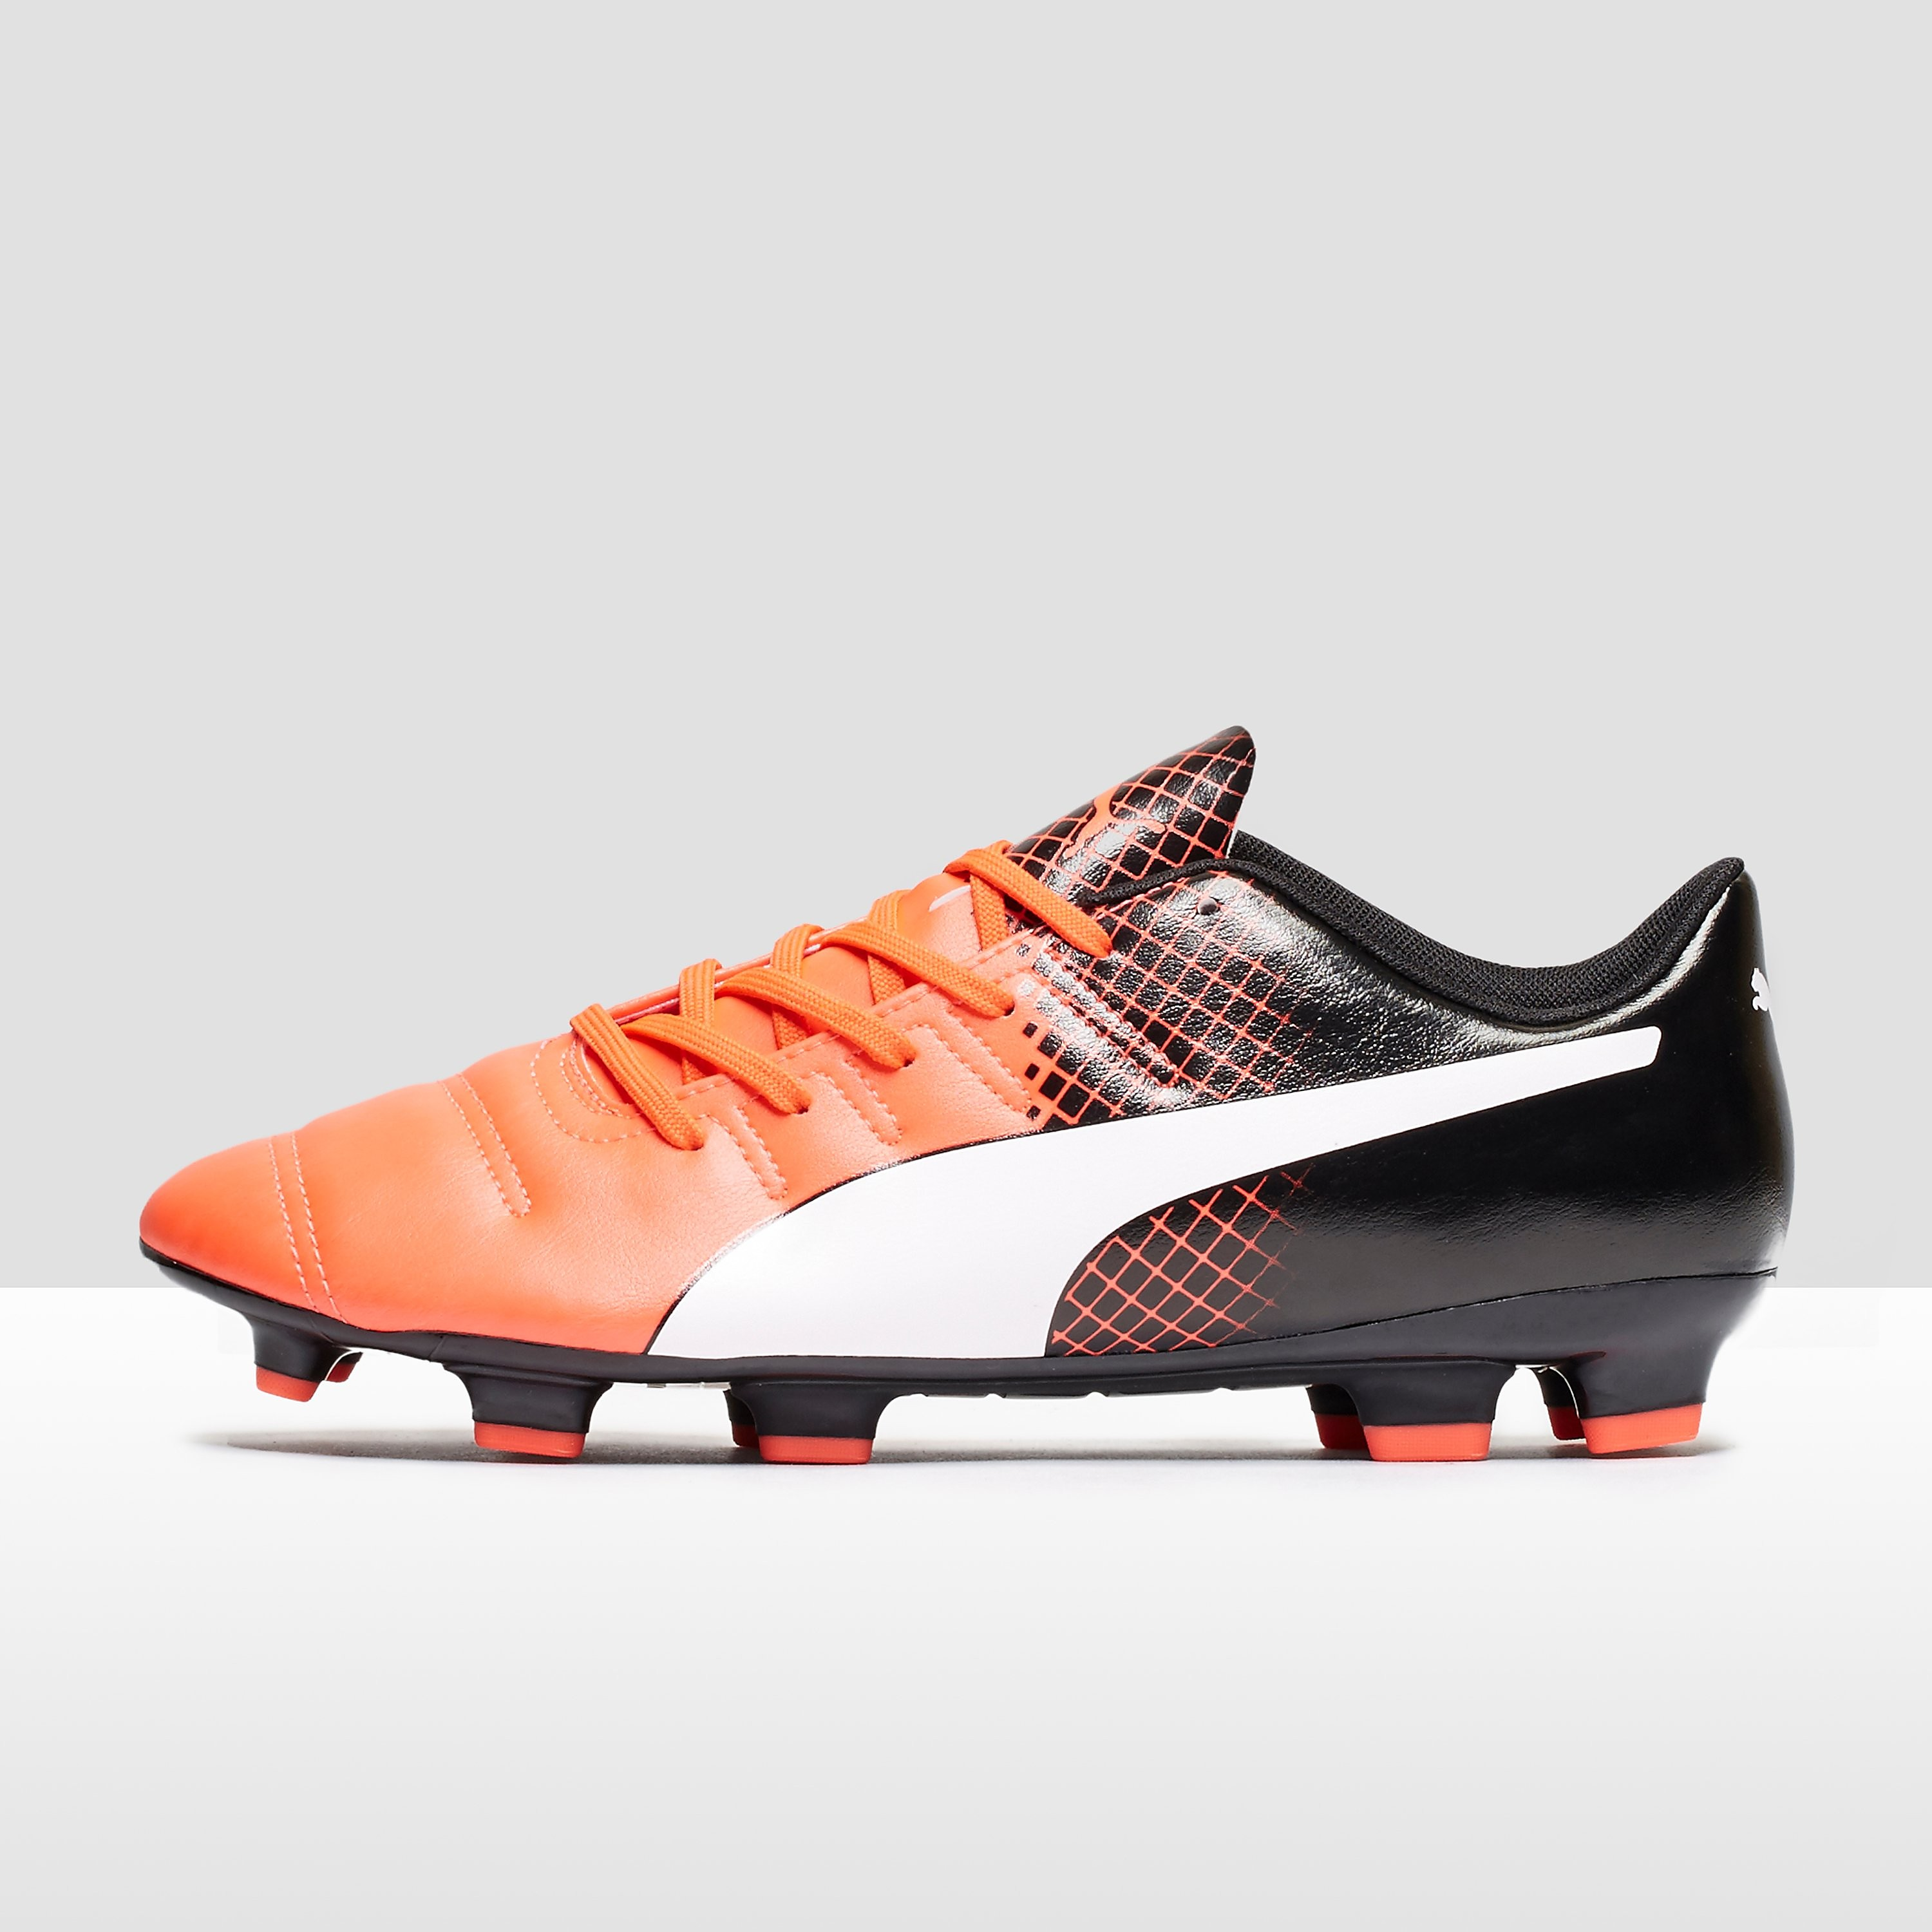 Puma EVOPOWER 4.3 FG Men's football boots